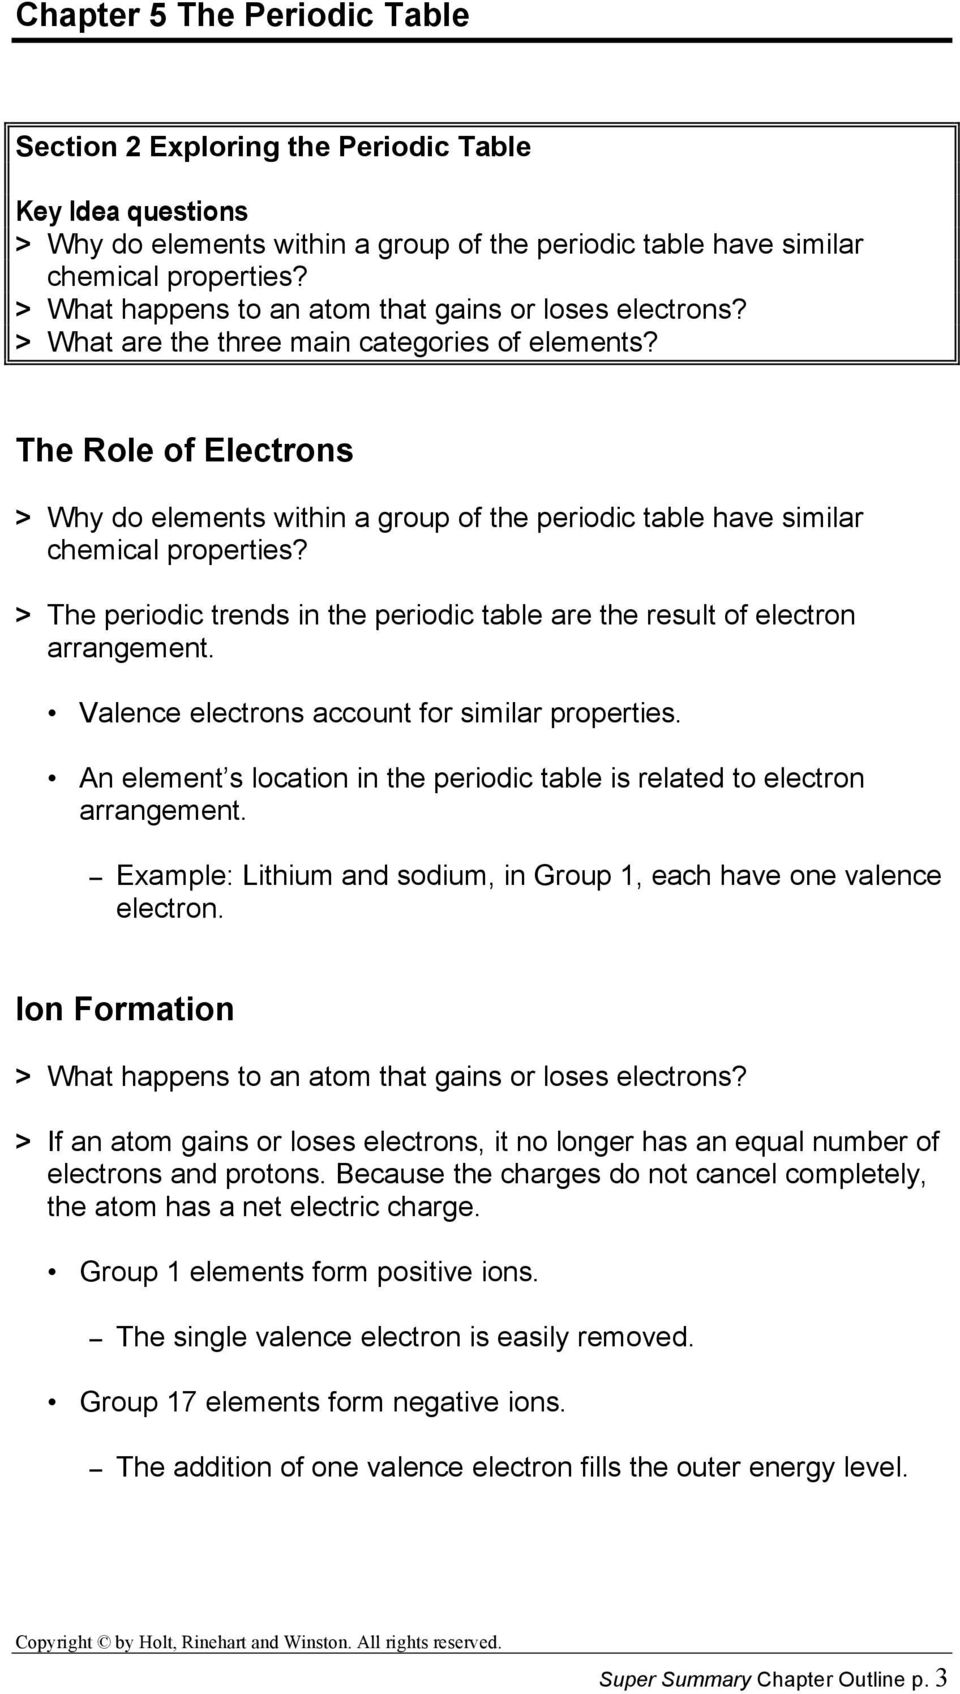 The Role of Electrons > Why do elements within a group of the periodic table have similar chemical properties? > The periodic trends in the periodic table are the result of electron arrangement.